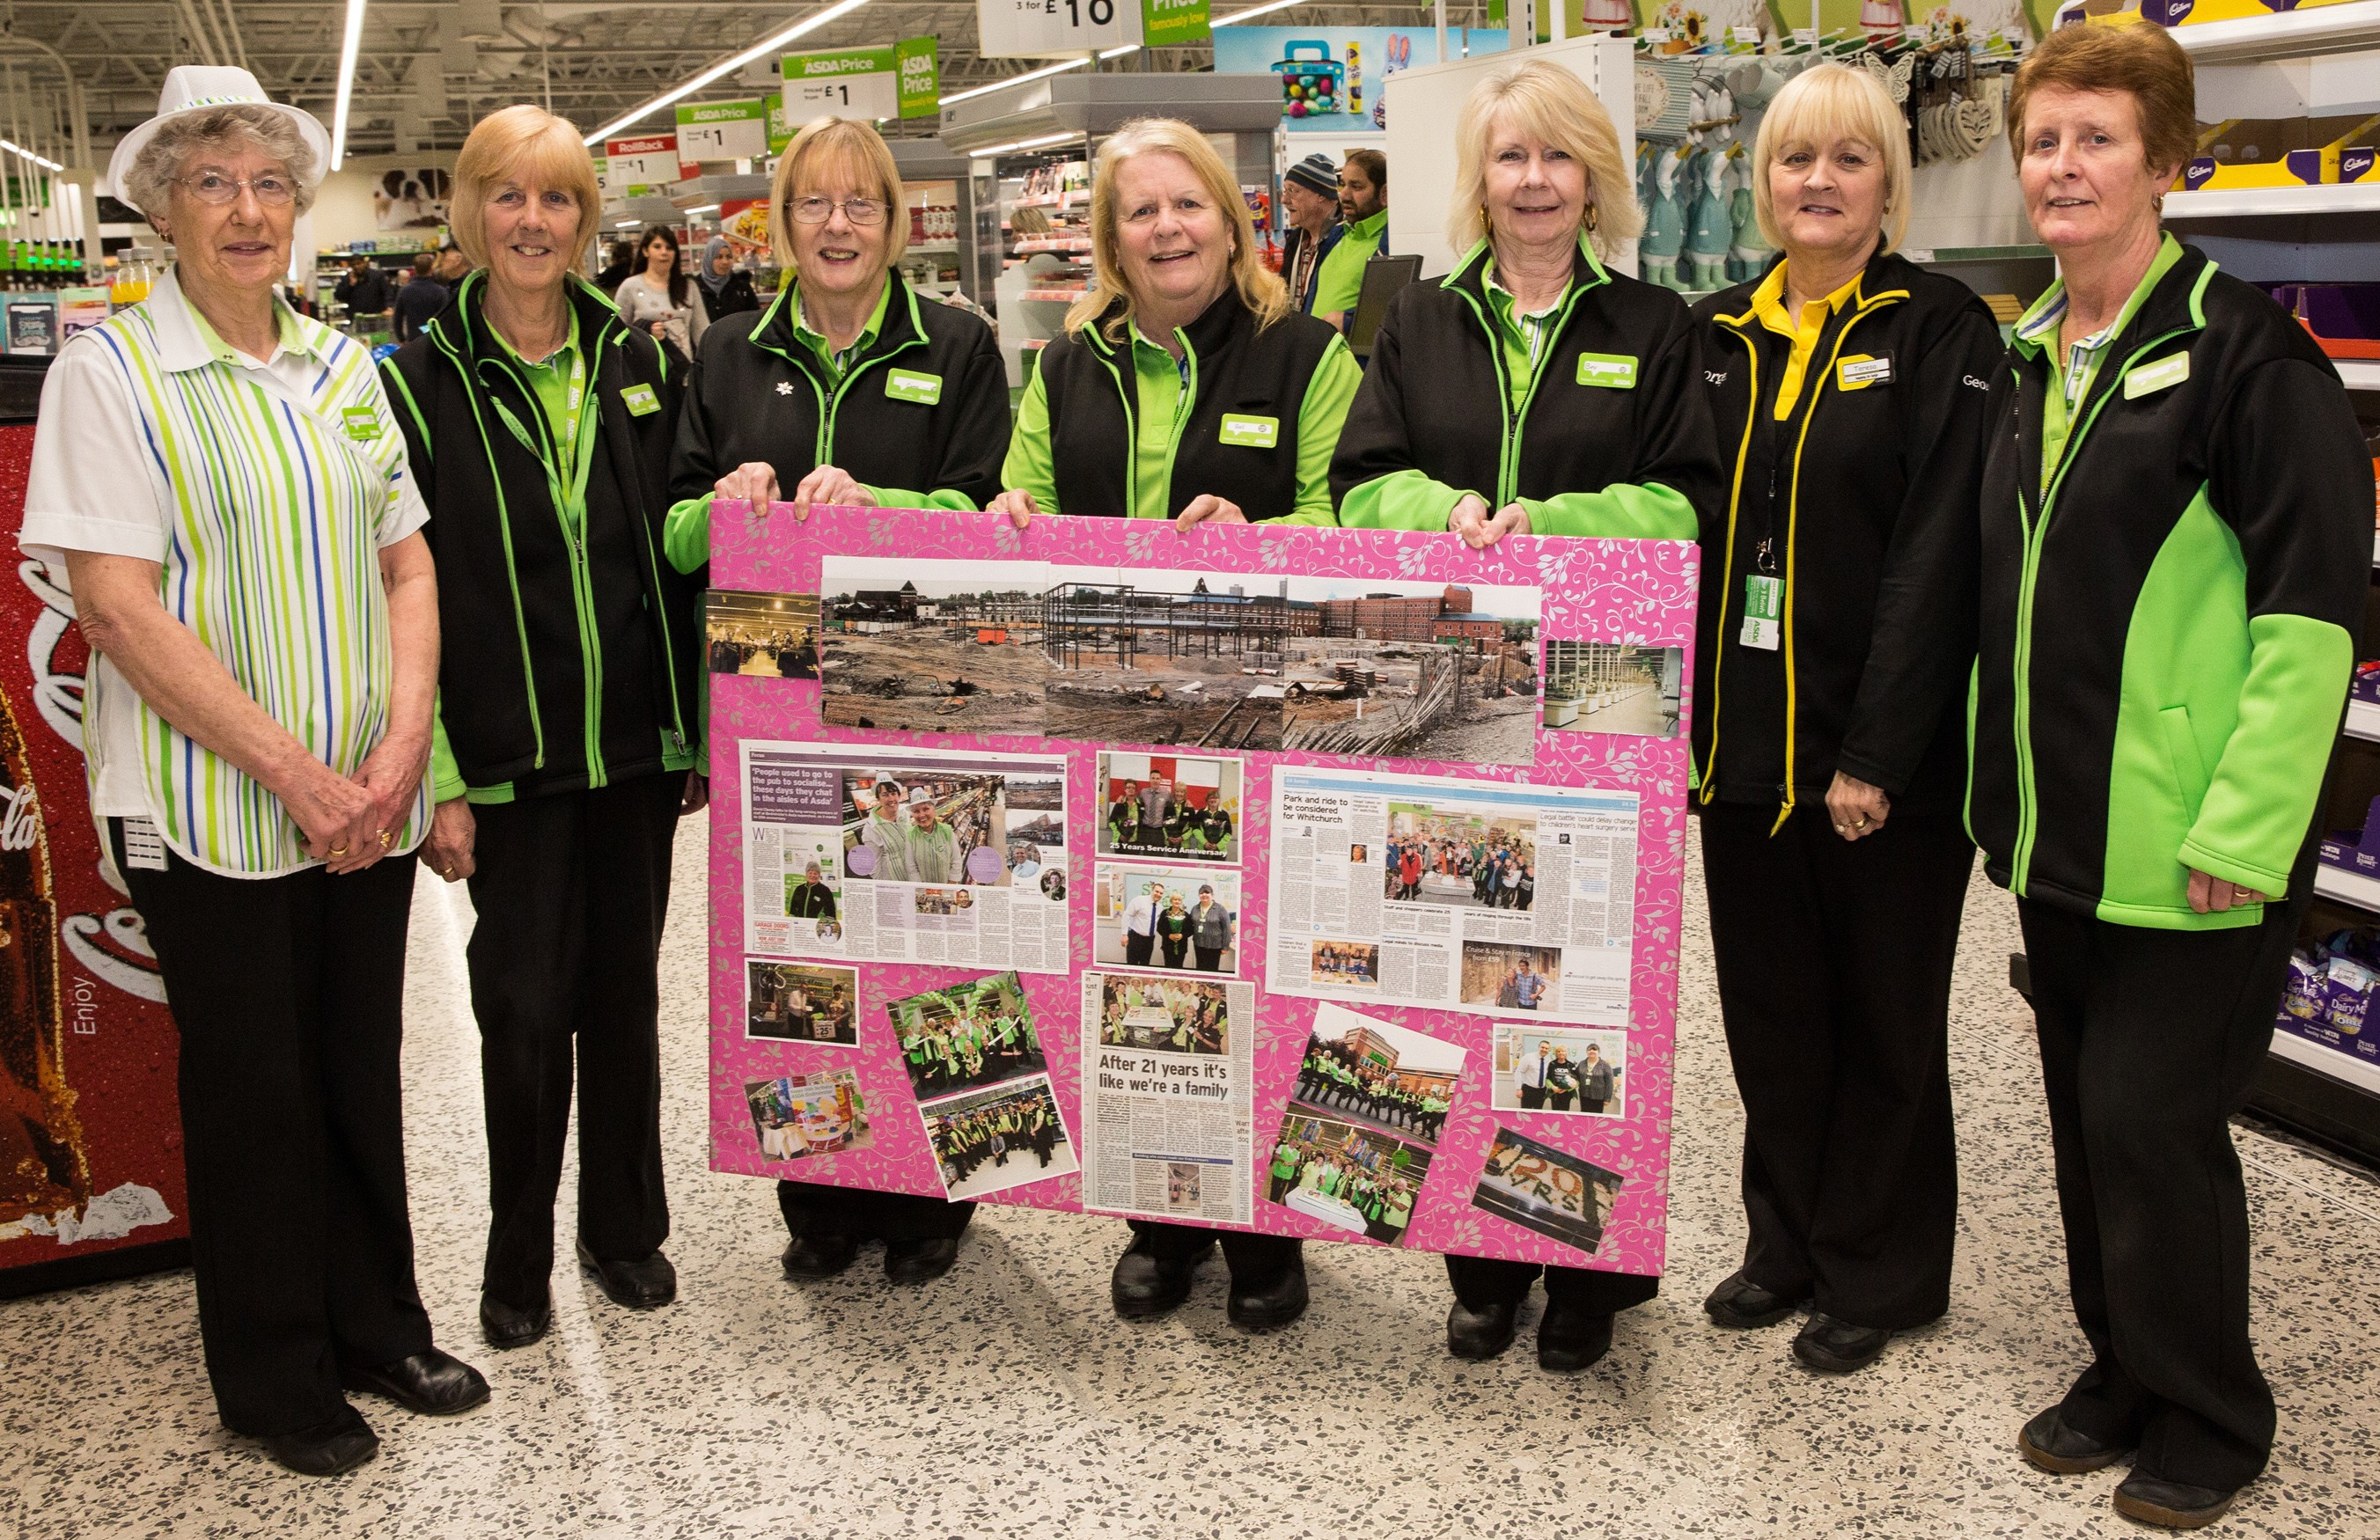 Long serving colleagues at Asda Bedminster's 30th birthday celebrations